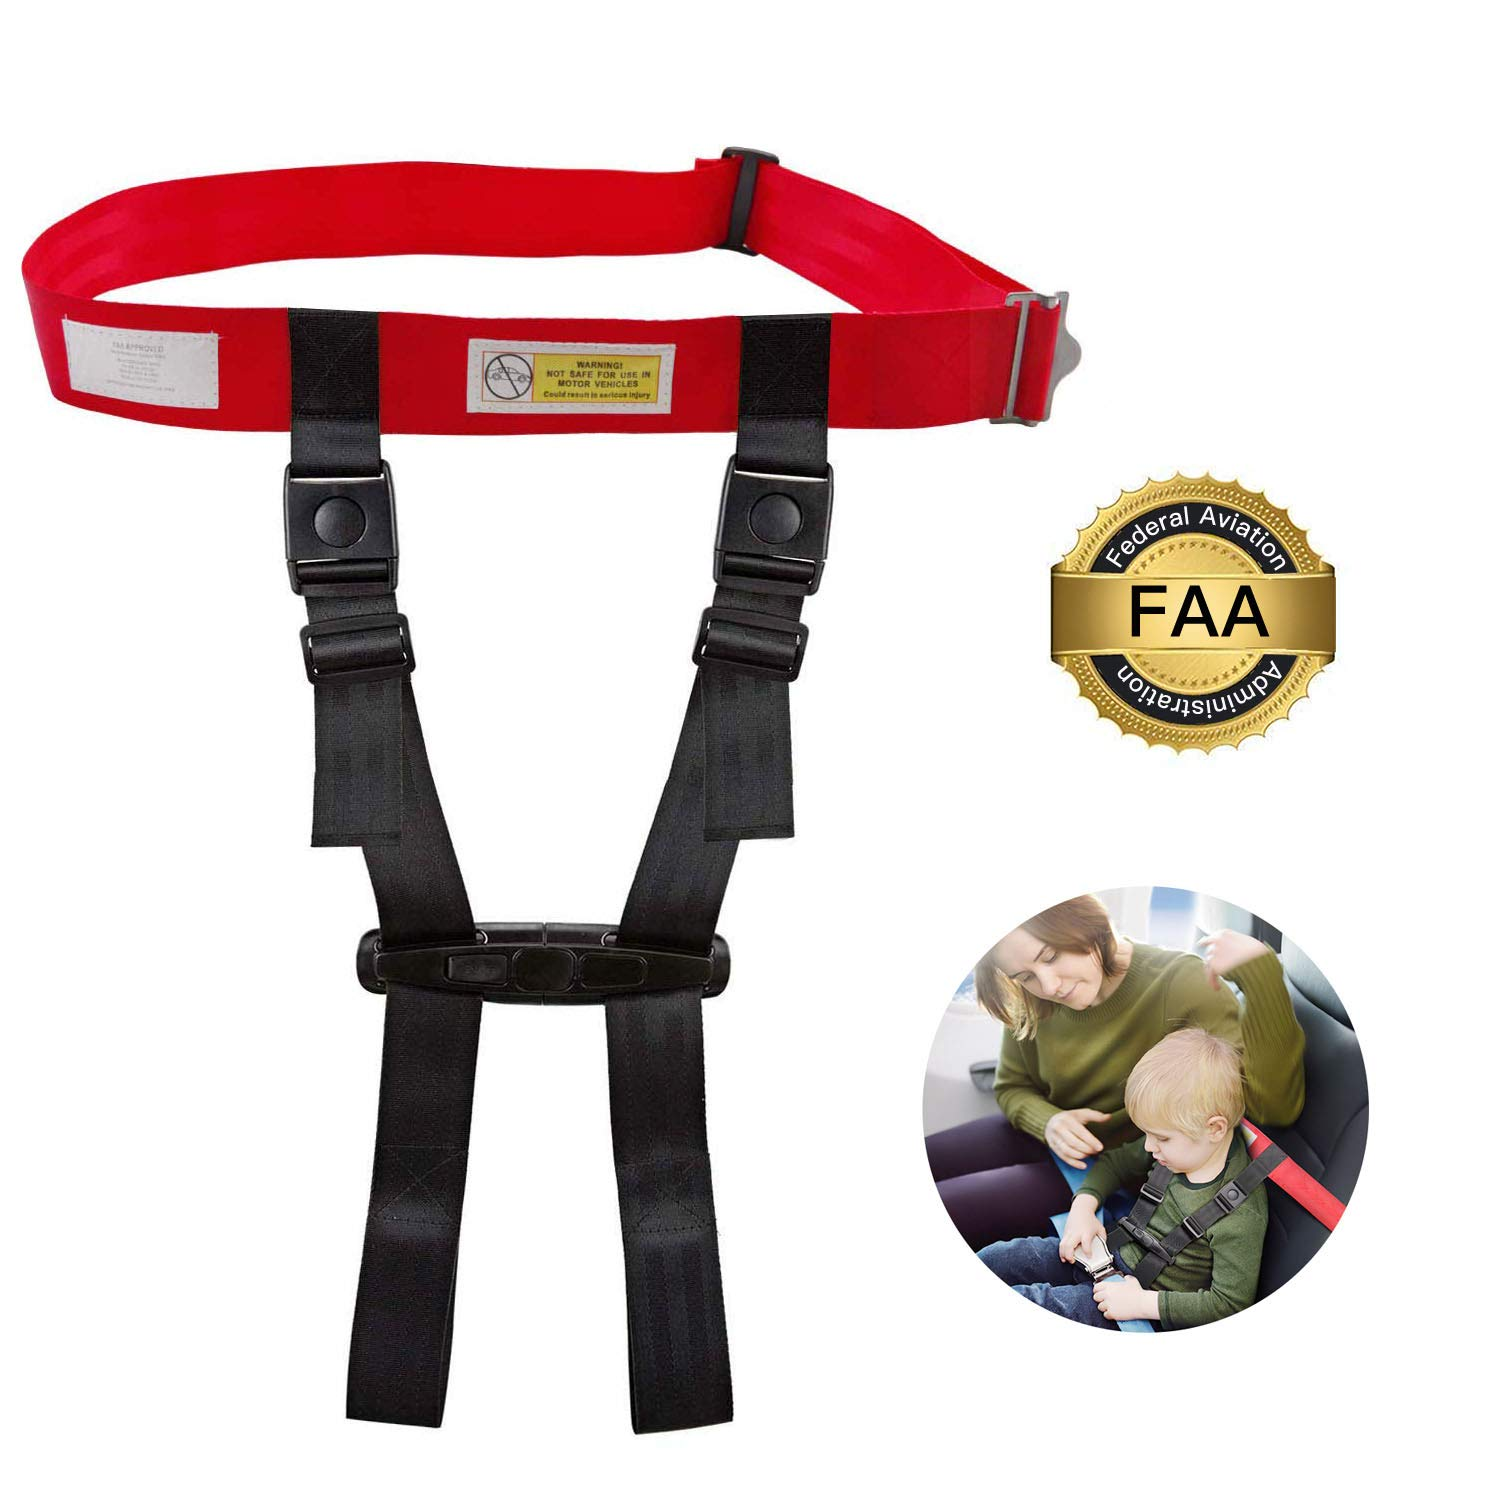 Ottolives Child Airplane Travel Safety Harness Approved by FAA, Clip Strap Restraint System with Safe Airplane Cares Restraining Fly Travel Plane for Toddler Kids Child Infant